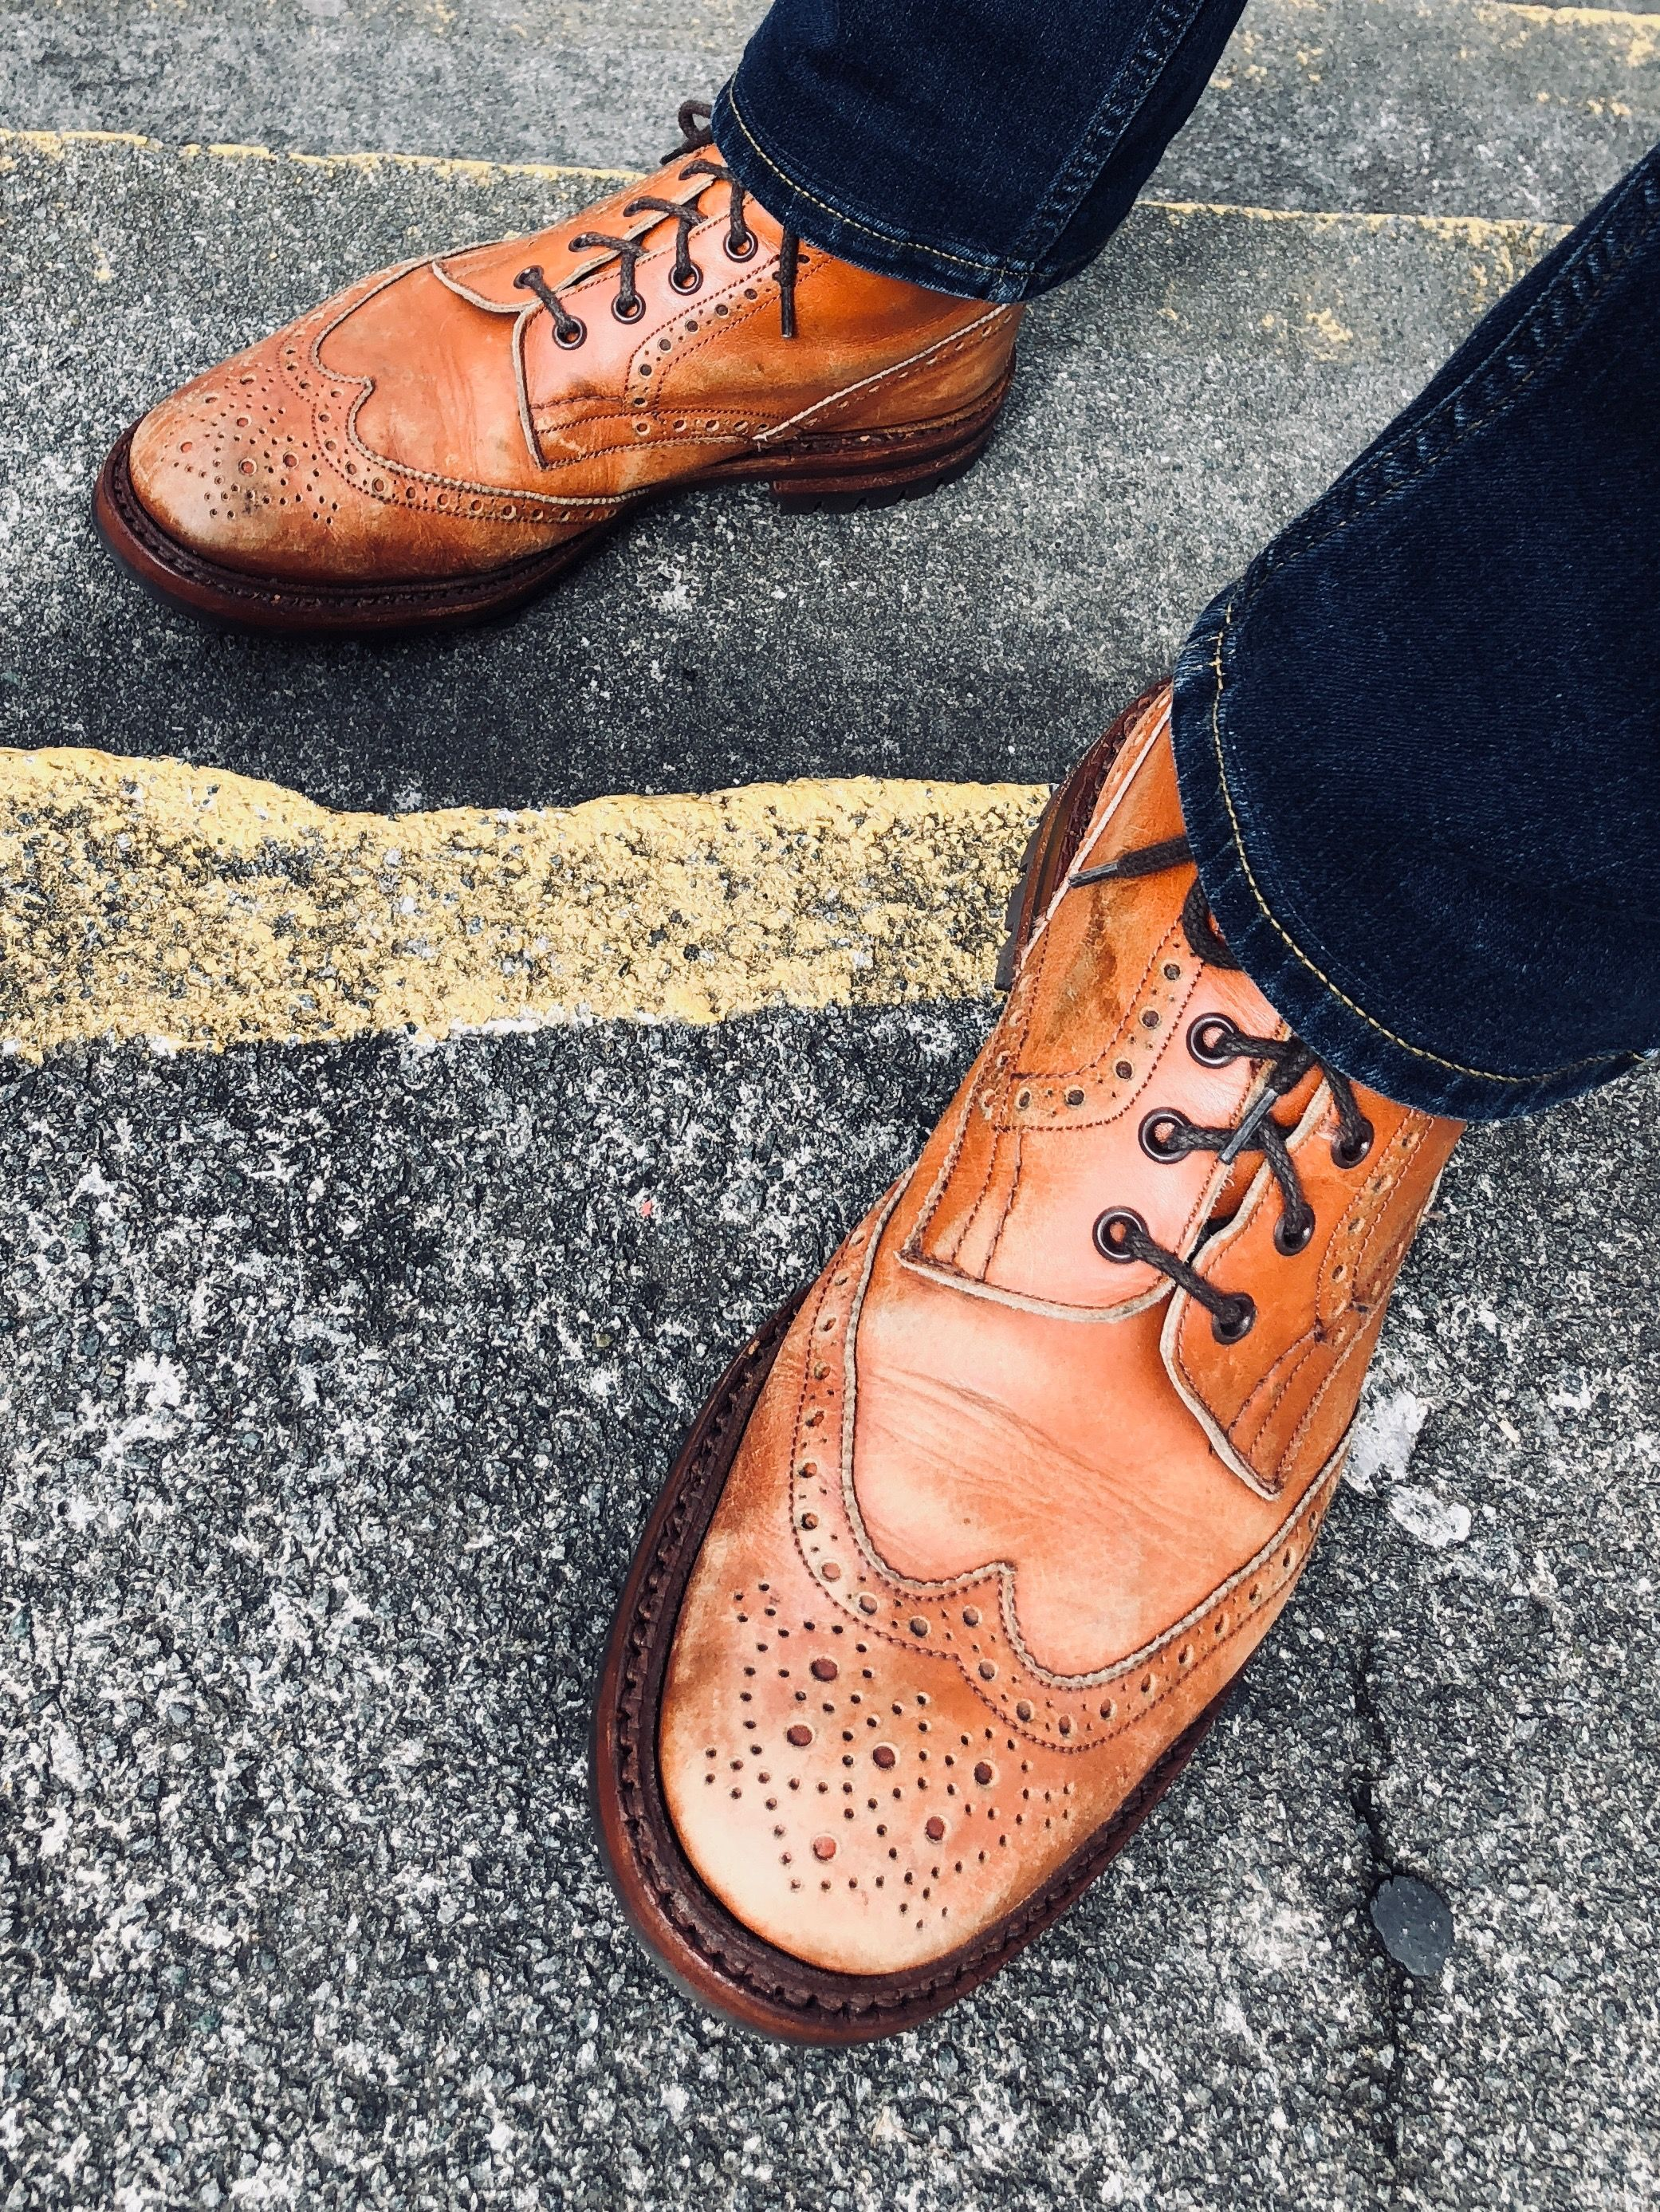 8f9eaa35685 My Vintage Trickers Stow Brogue Boots, I Don't Polish These ...